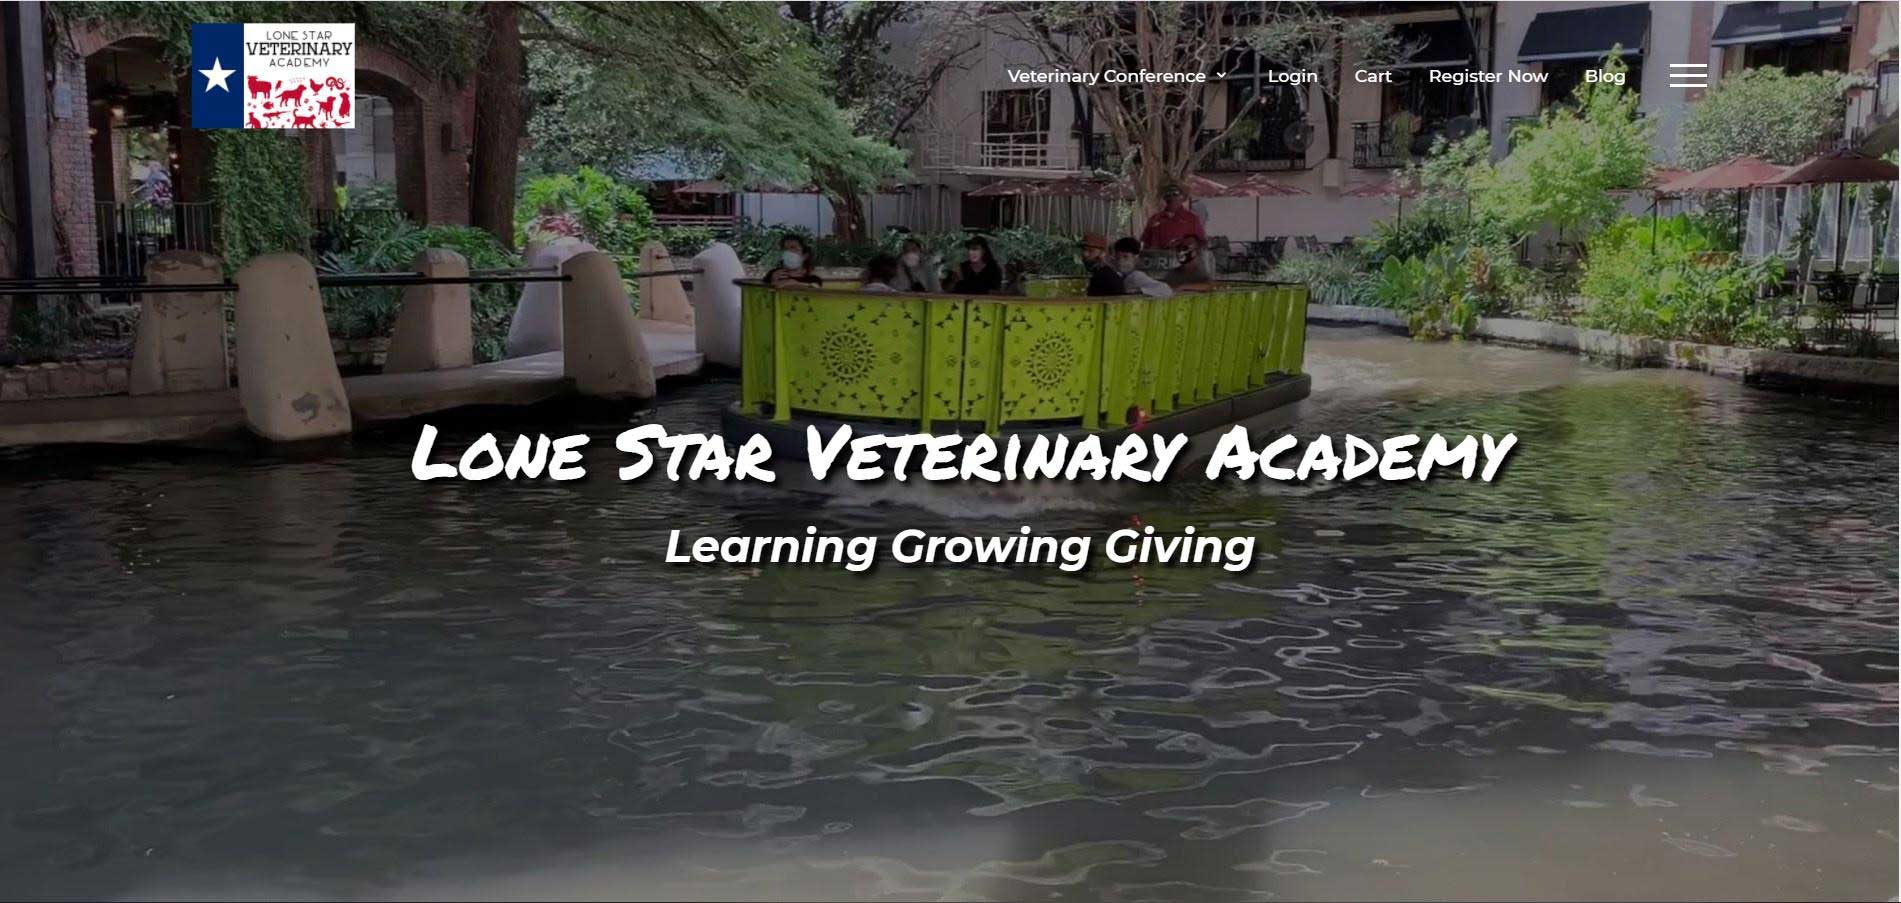 Lone Star Veterinary Academy